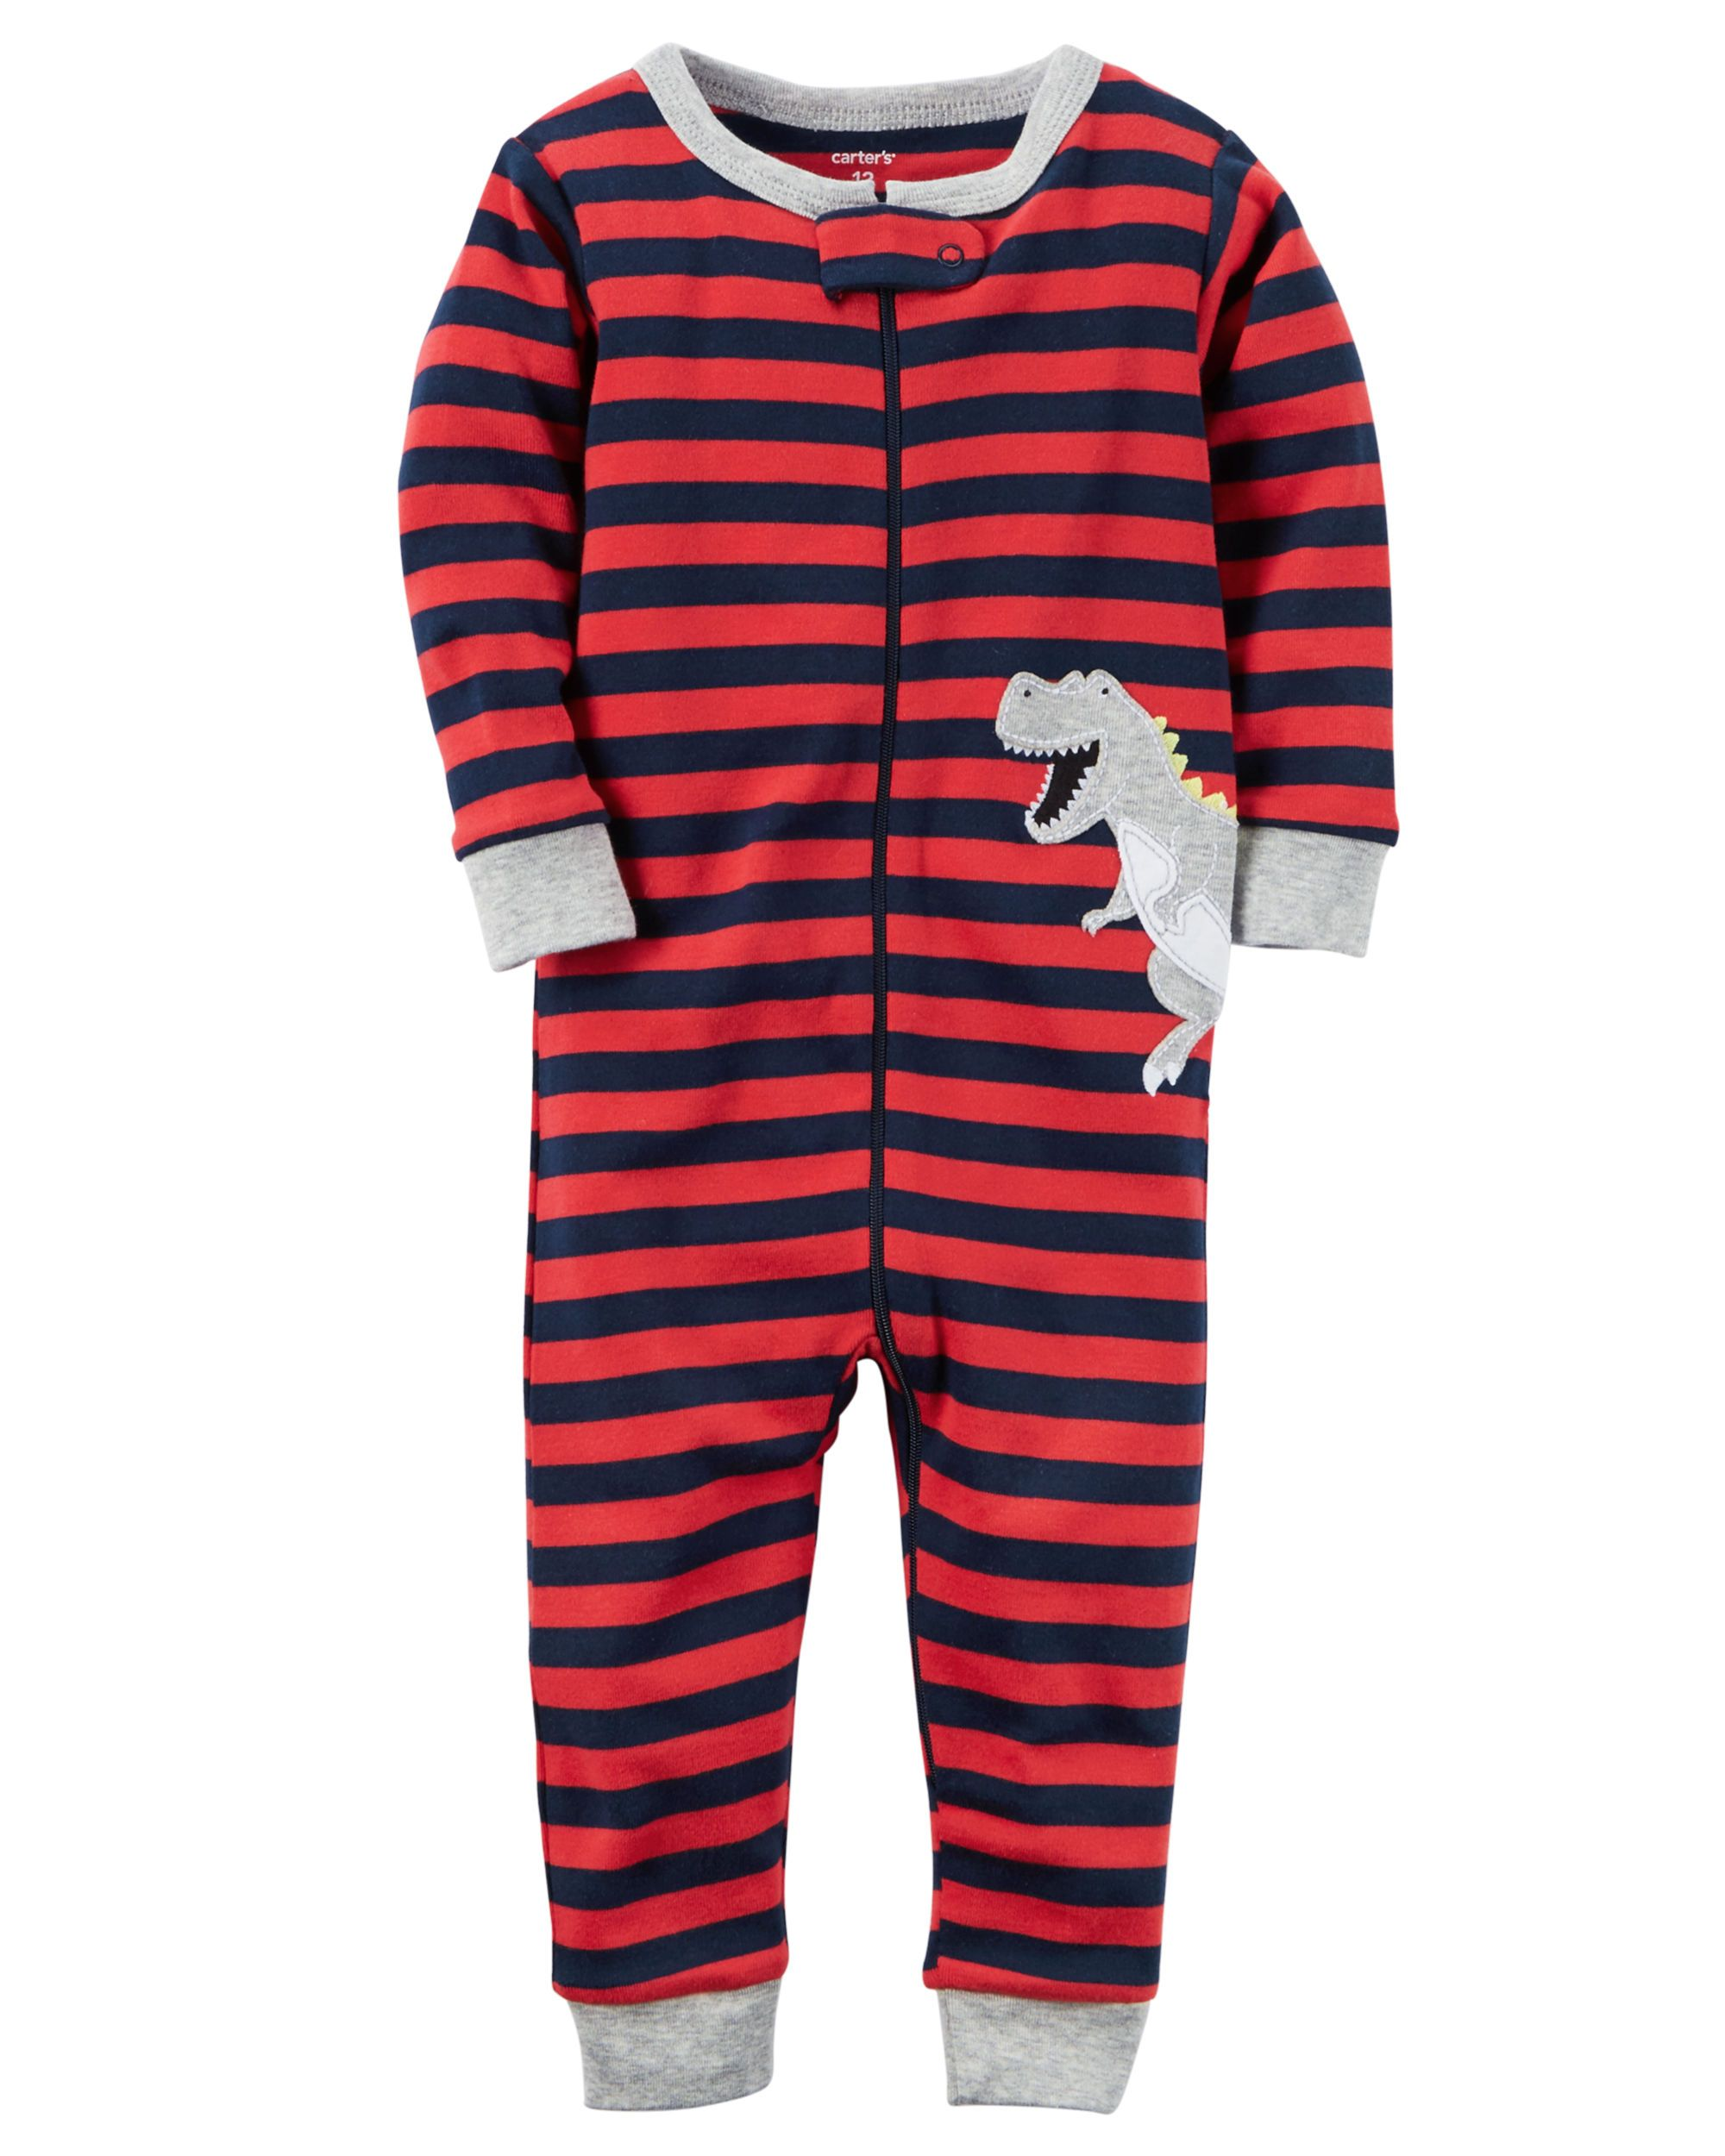 90ed9add4 1-Piece Snug Fit Cotton Footless PJs